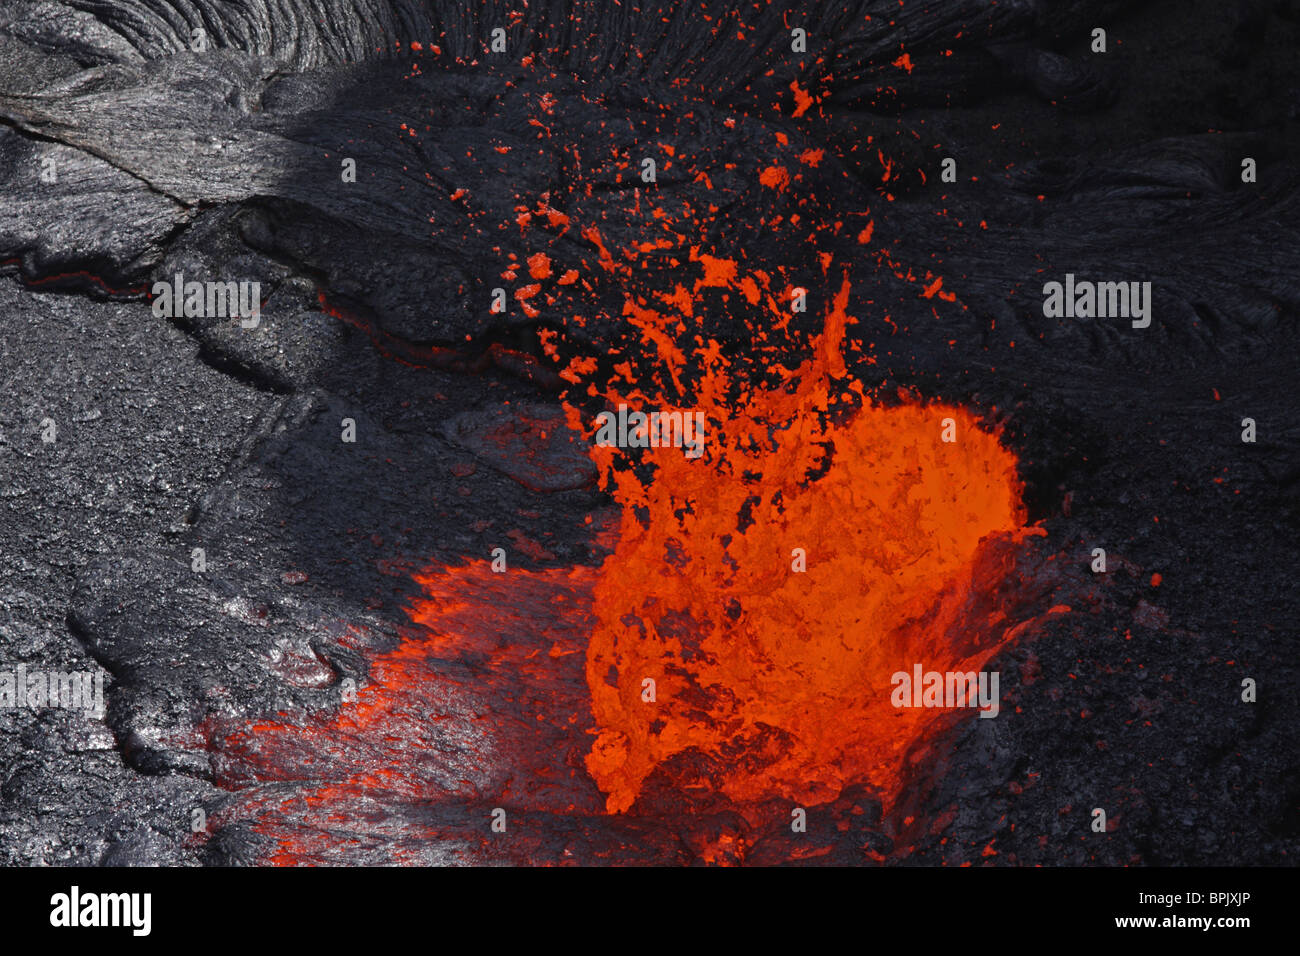 February 8, 2008 - Erta Ale fountaining lava lake, Danakil Depression, Ethiopia. - Stock Image